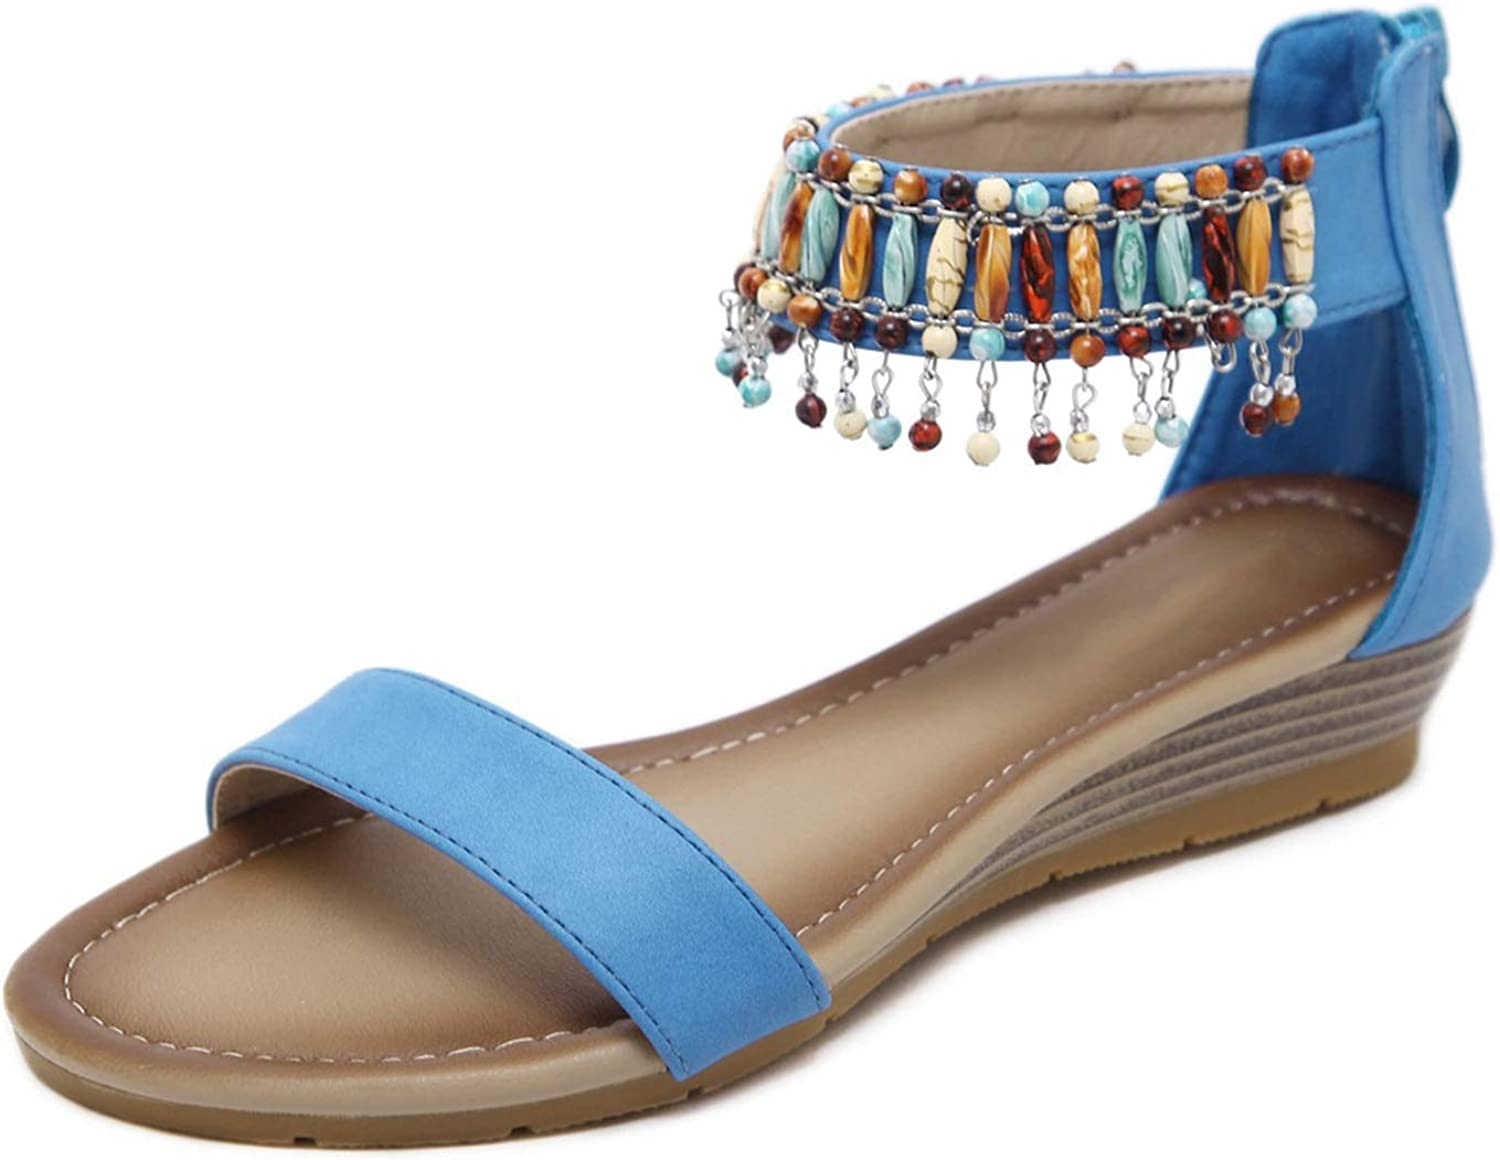 The fairy Summer Ethnic Women Sandals Ankle Strap bluee Apricot Concise Comfortable Casual shoes